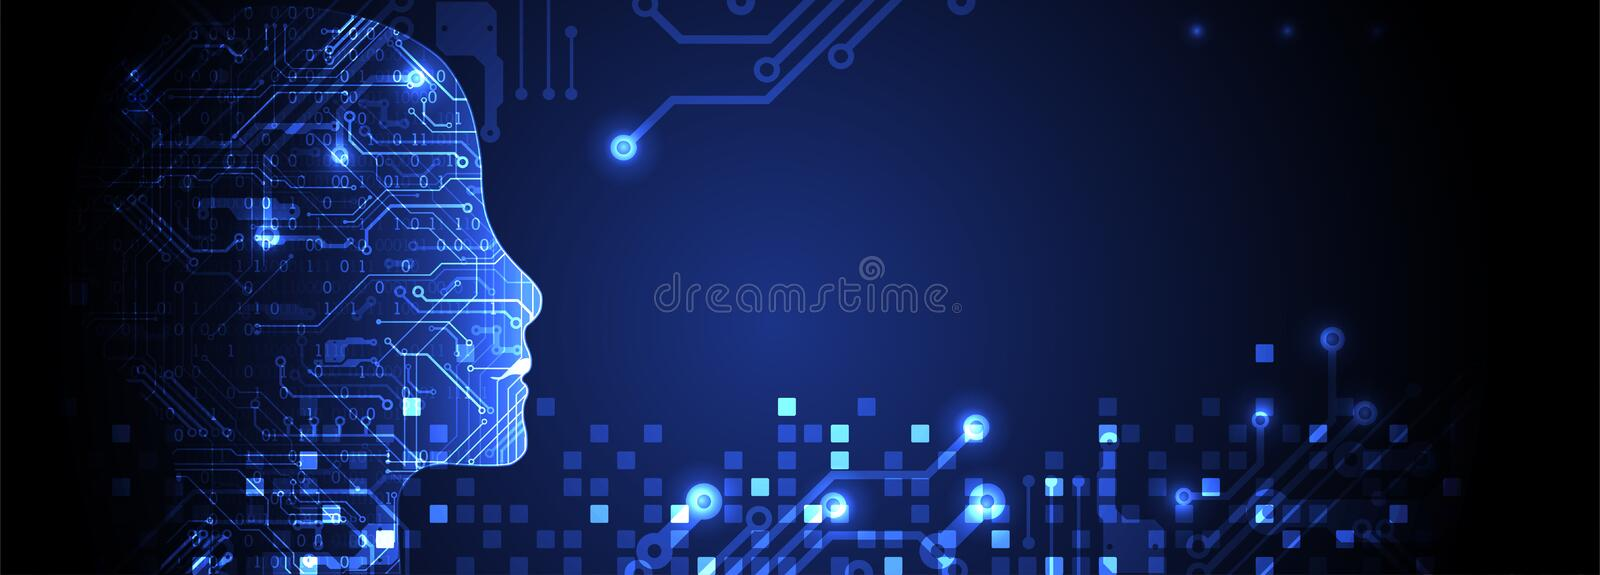 Artificial intelligence concept. Technology background. Artificial intelligence concept. Technology themed dark background. Vector science illustration